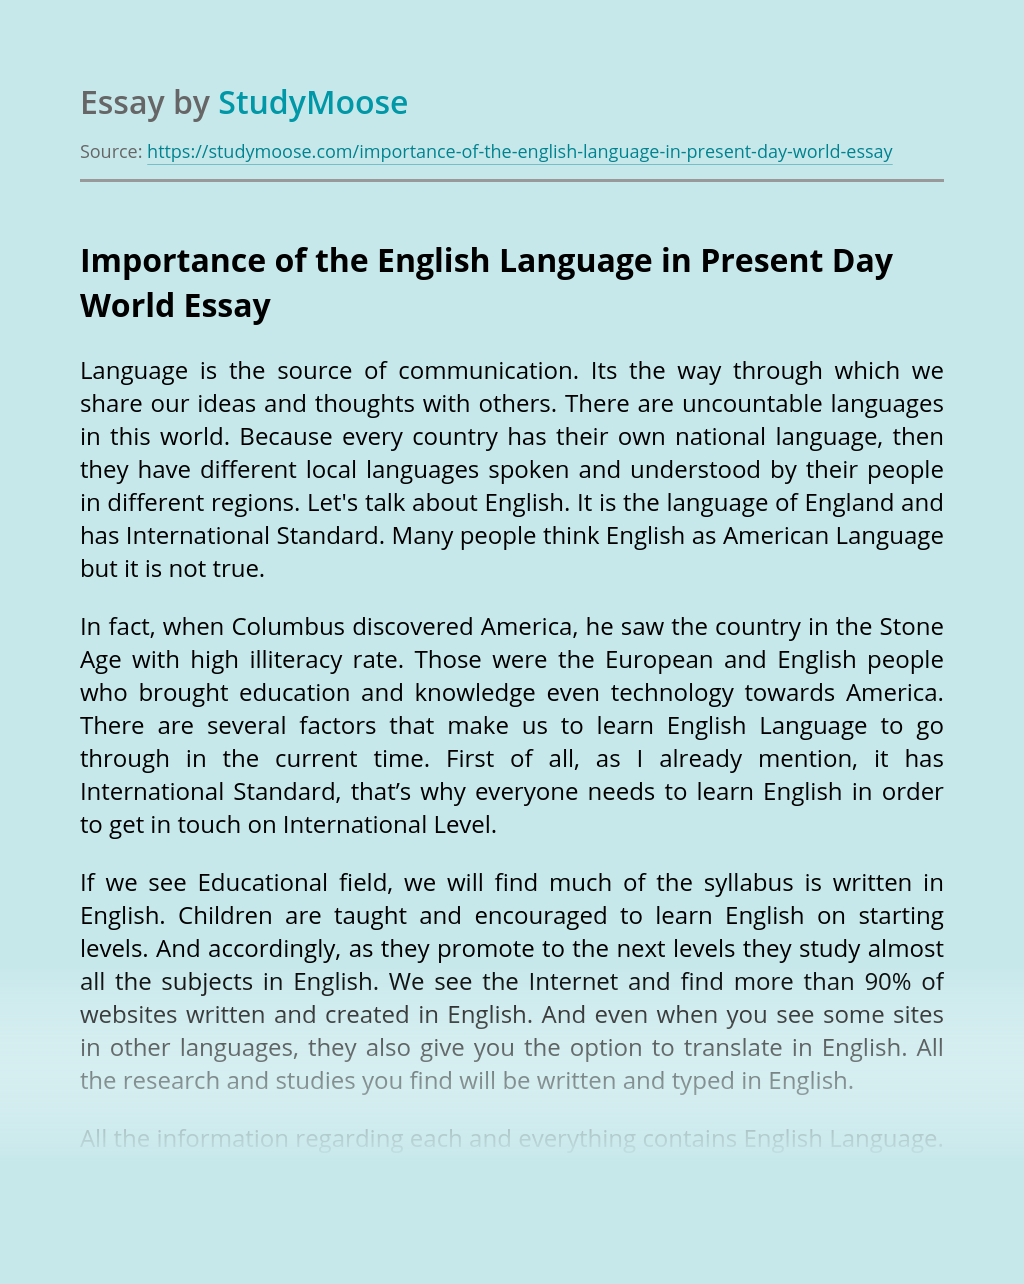 Importance of the English Language in Present Day World